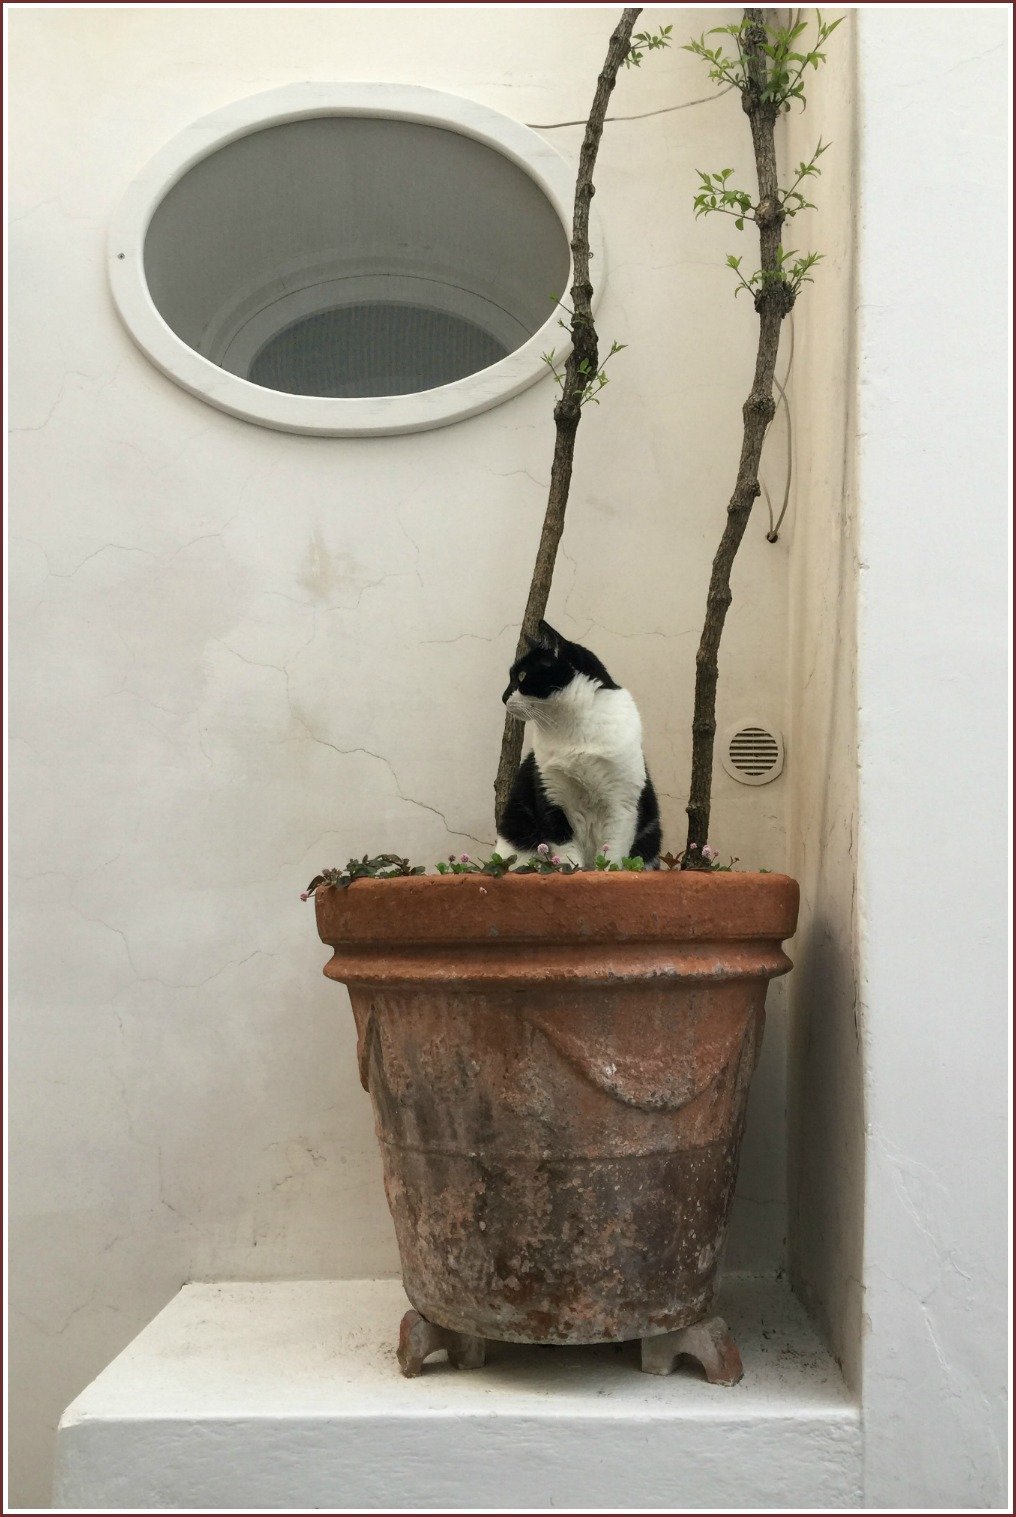 Positano Pot Plant Cat